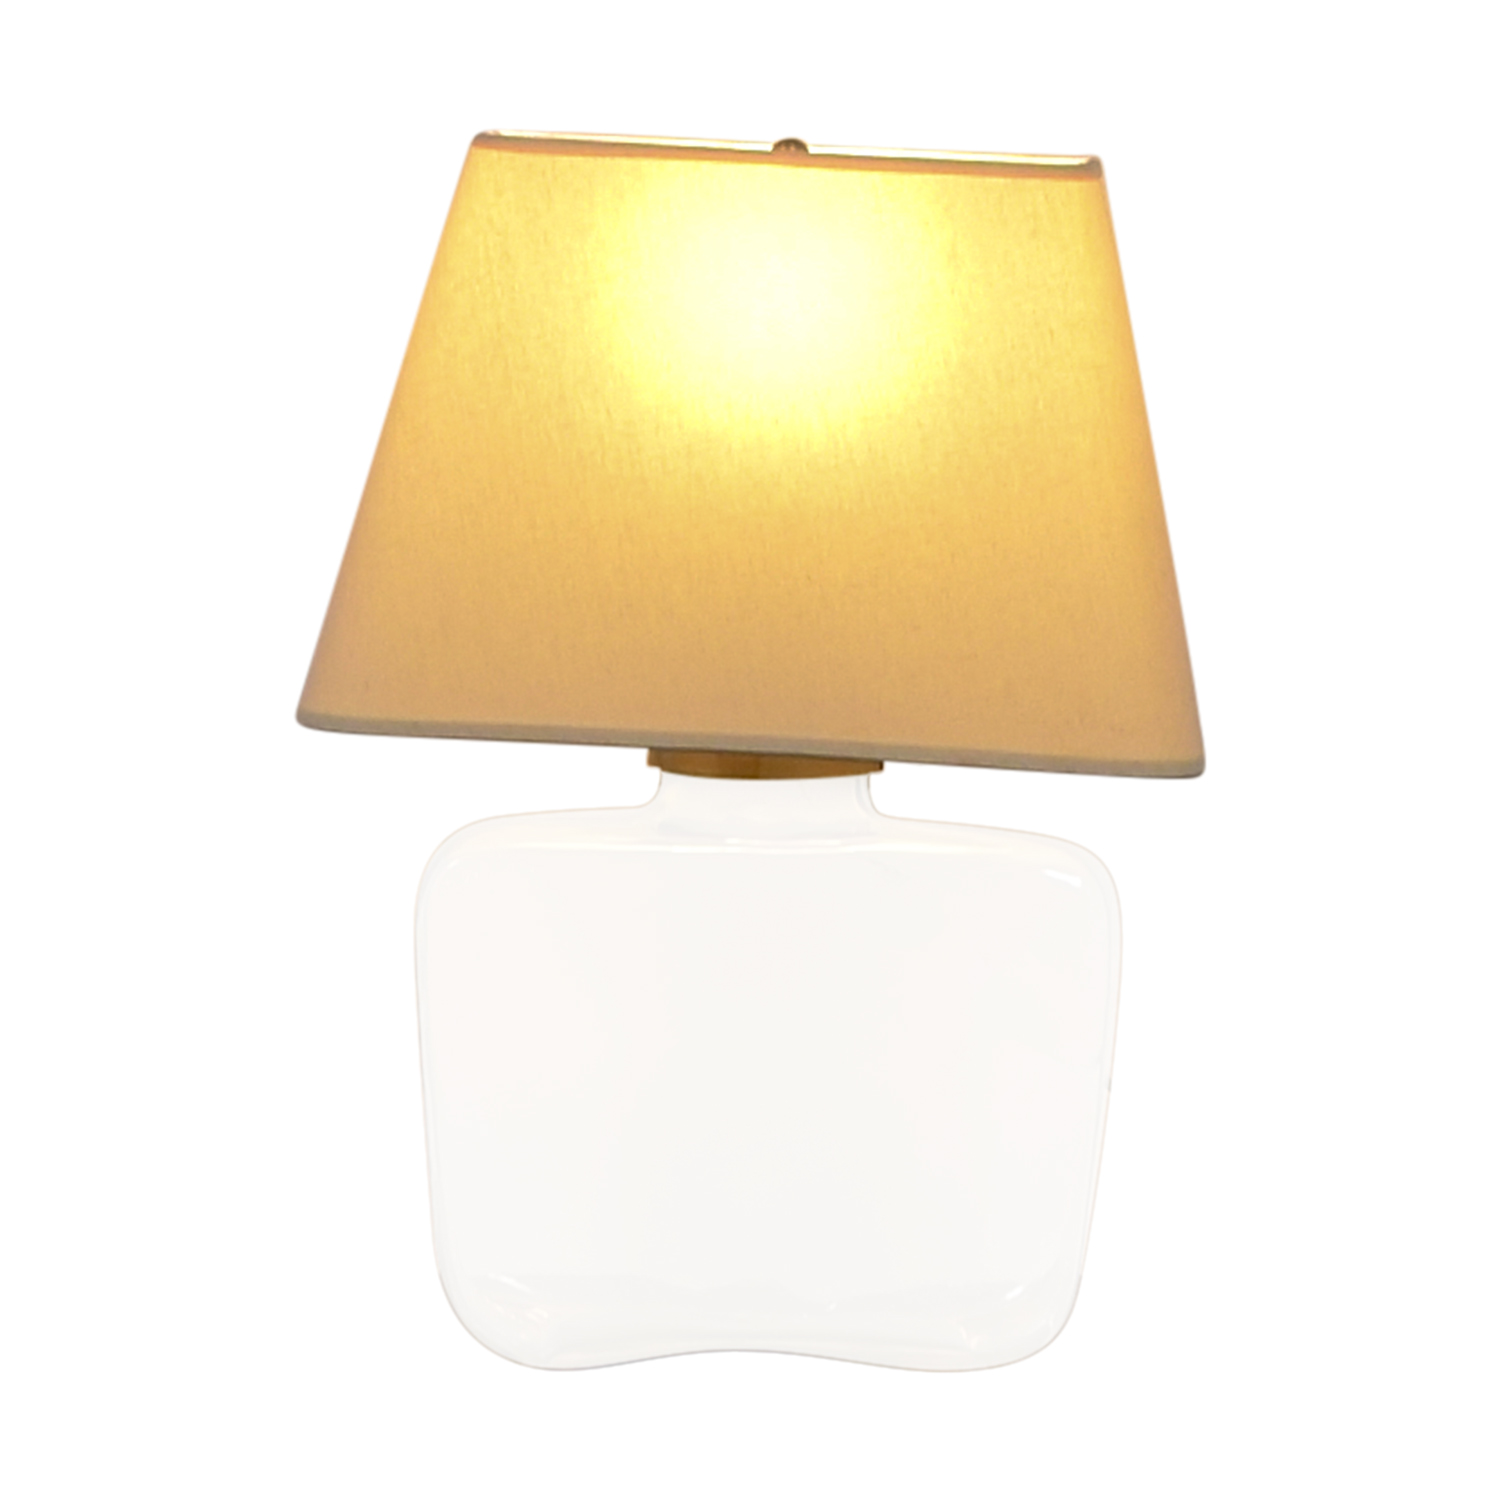 buy Pottery Barn Pottery Barn Atrium Glass Table Lamp online